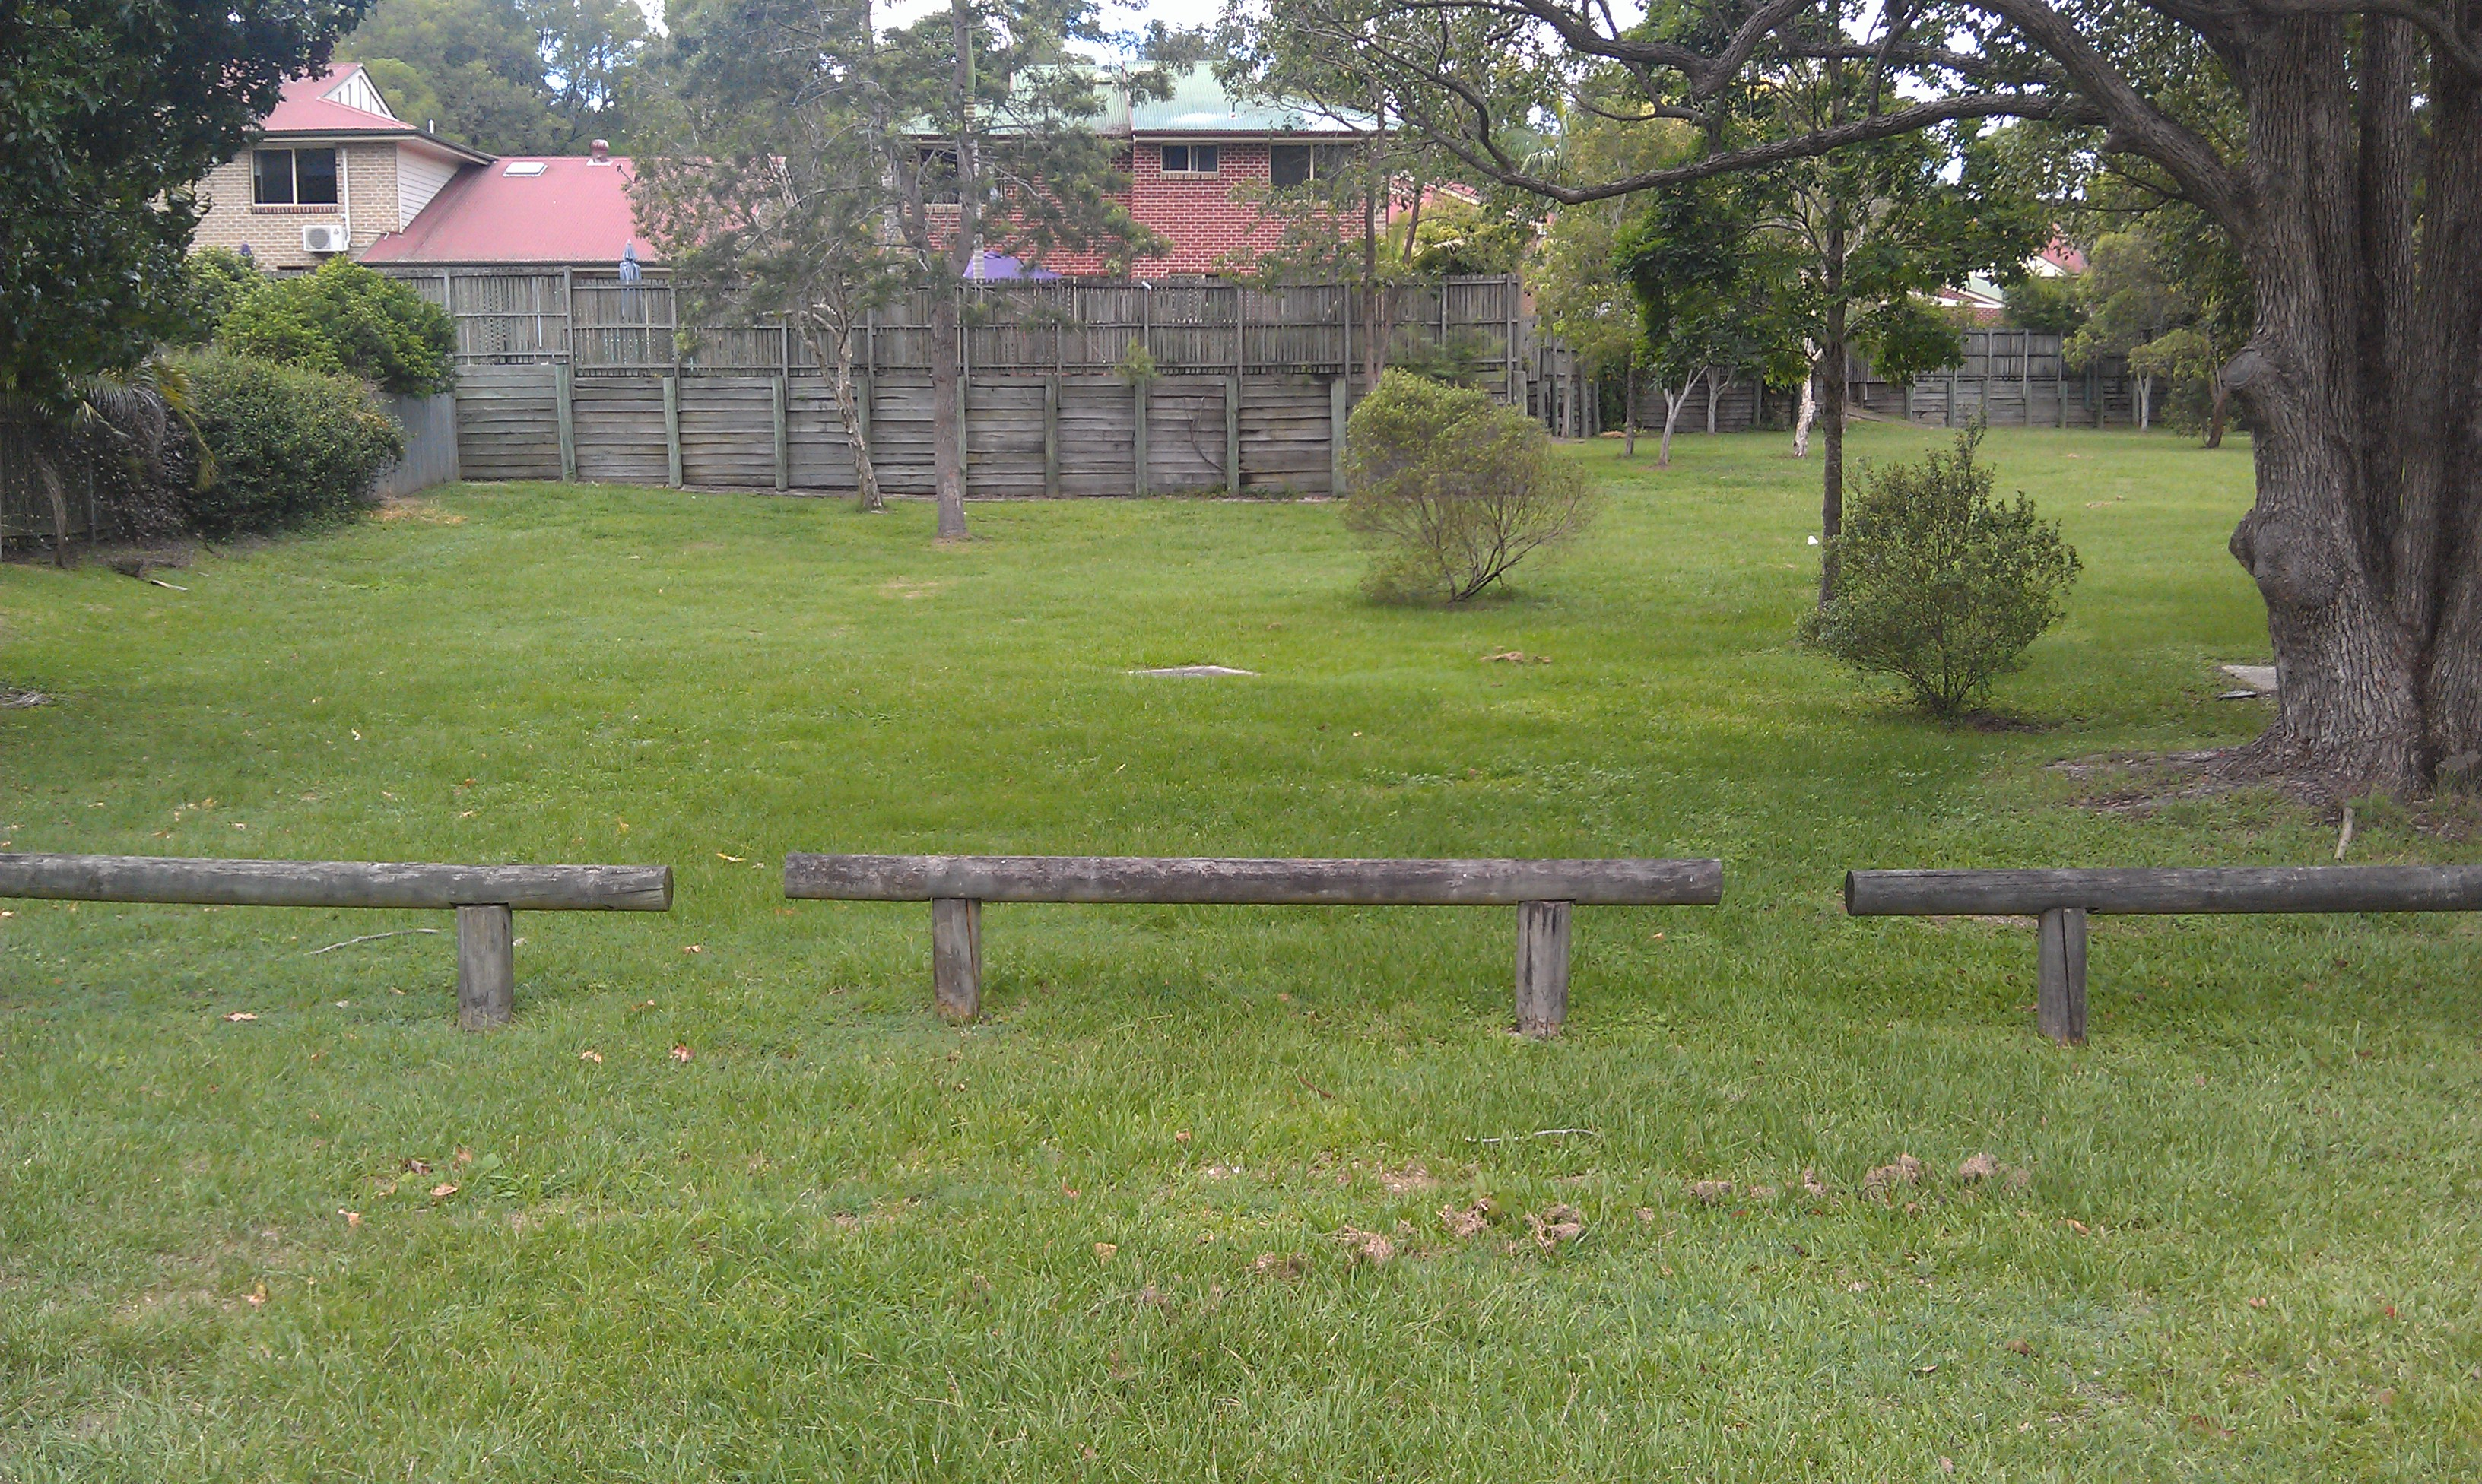 A Park with Railings